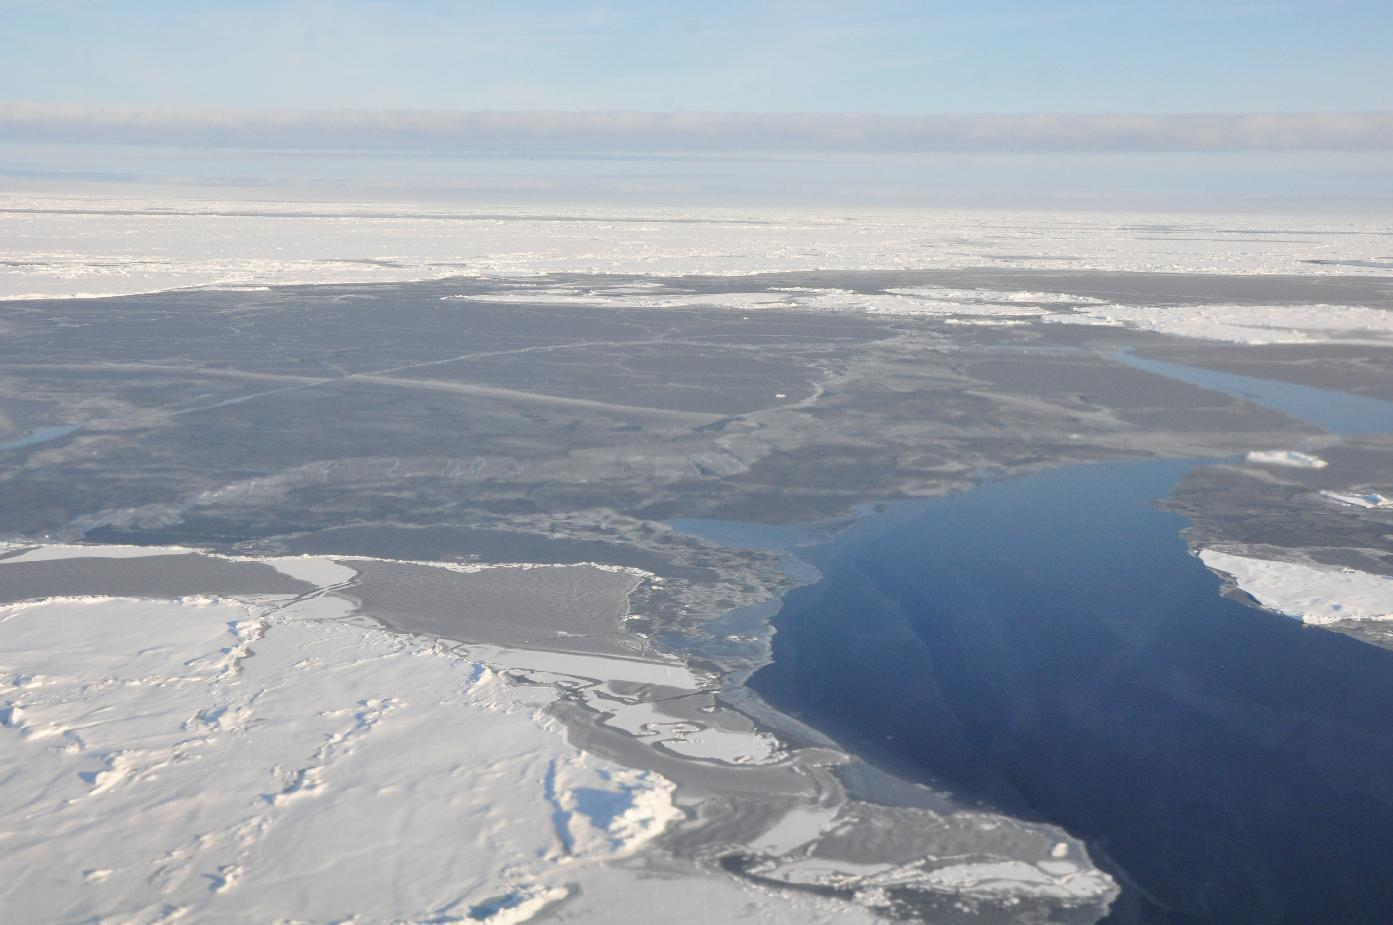 Report: Arctic loses snow, ice; absorbs more heat